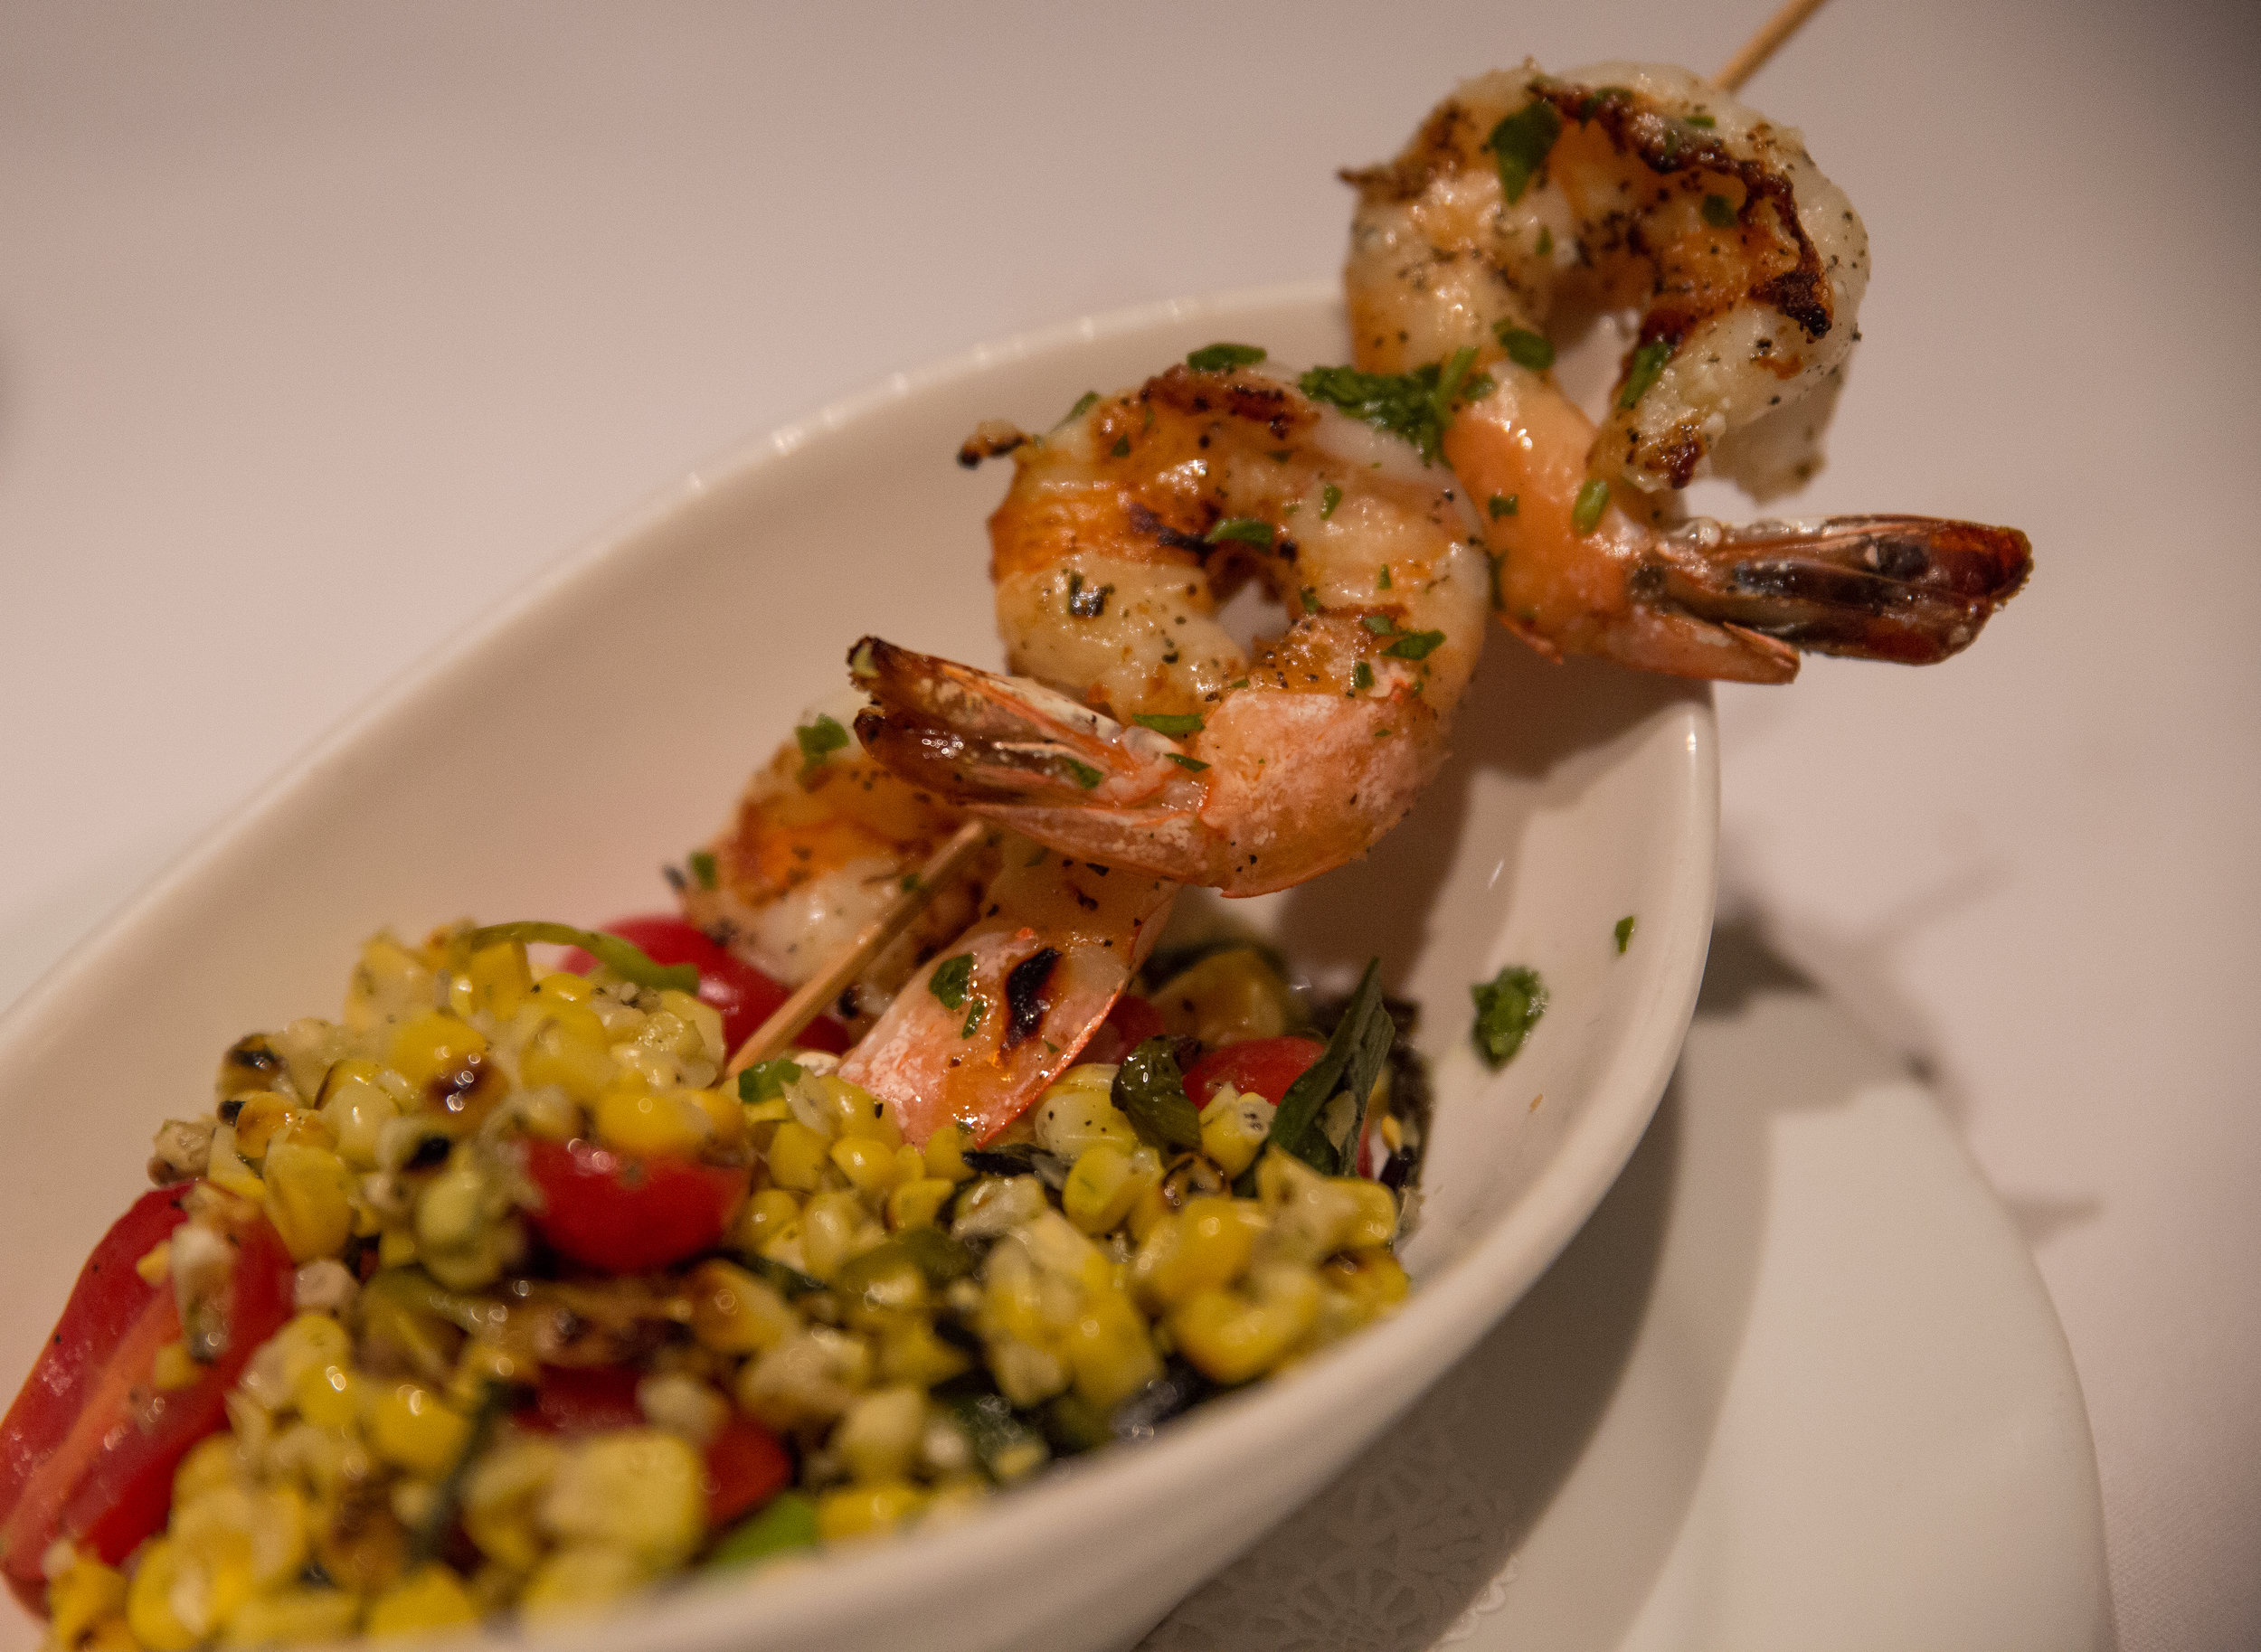 The Grilled Shrimp appetizer is the perfect blend of smoky grilled shrimp paired with a chilled corn salad with a refreshing citrus dressing. (Photo / Craig D'Andrea).